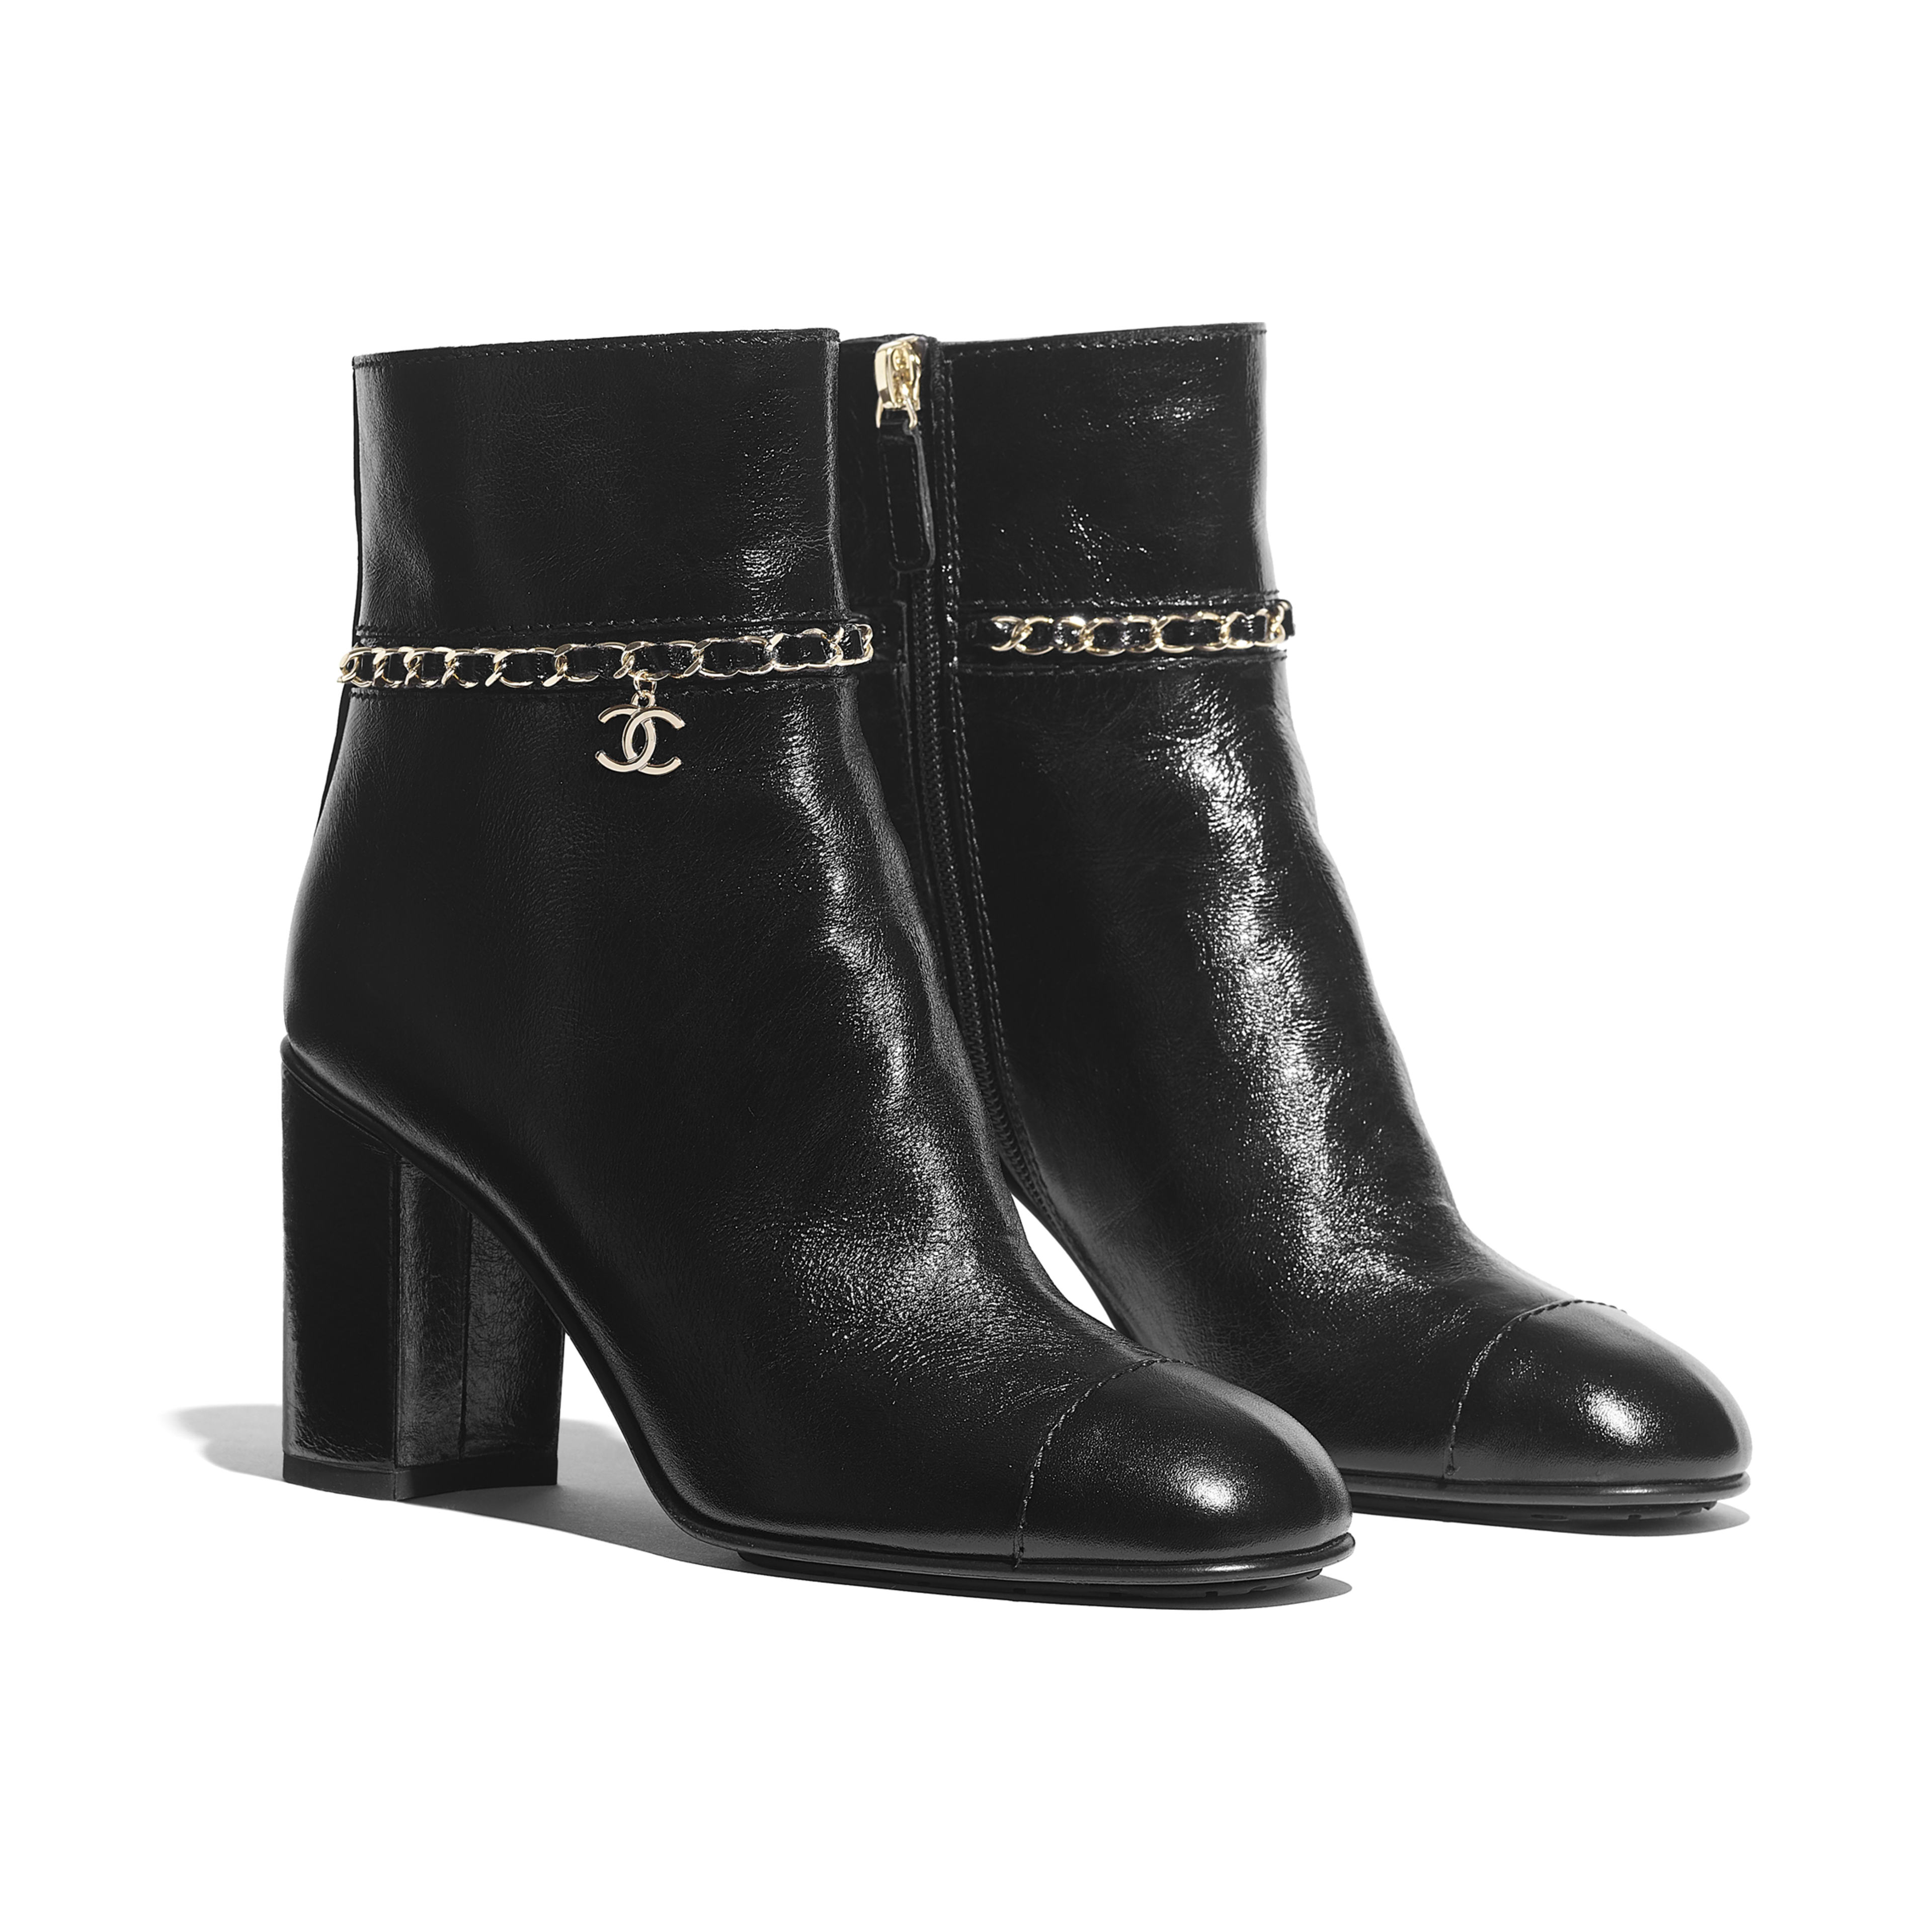 Ankle Boots - Black - Calfskin - Alternative view - see full sized version